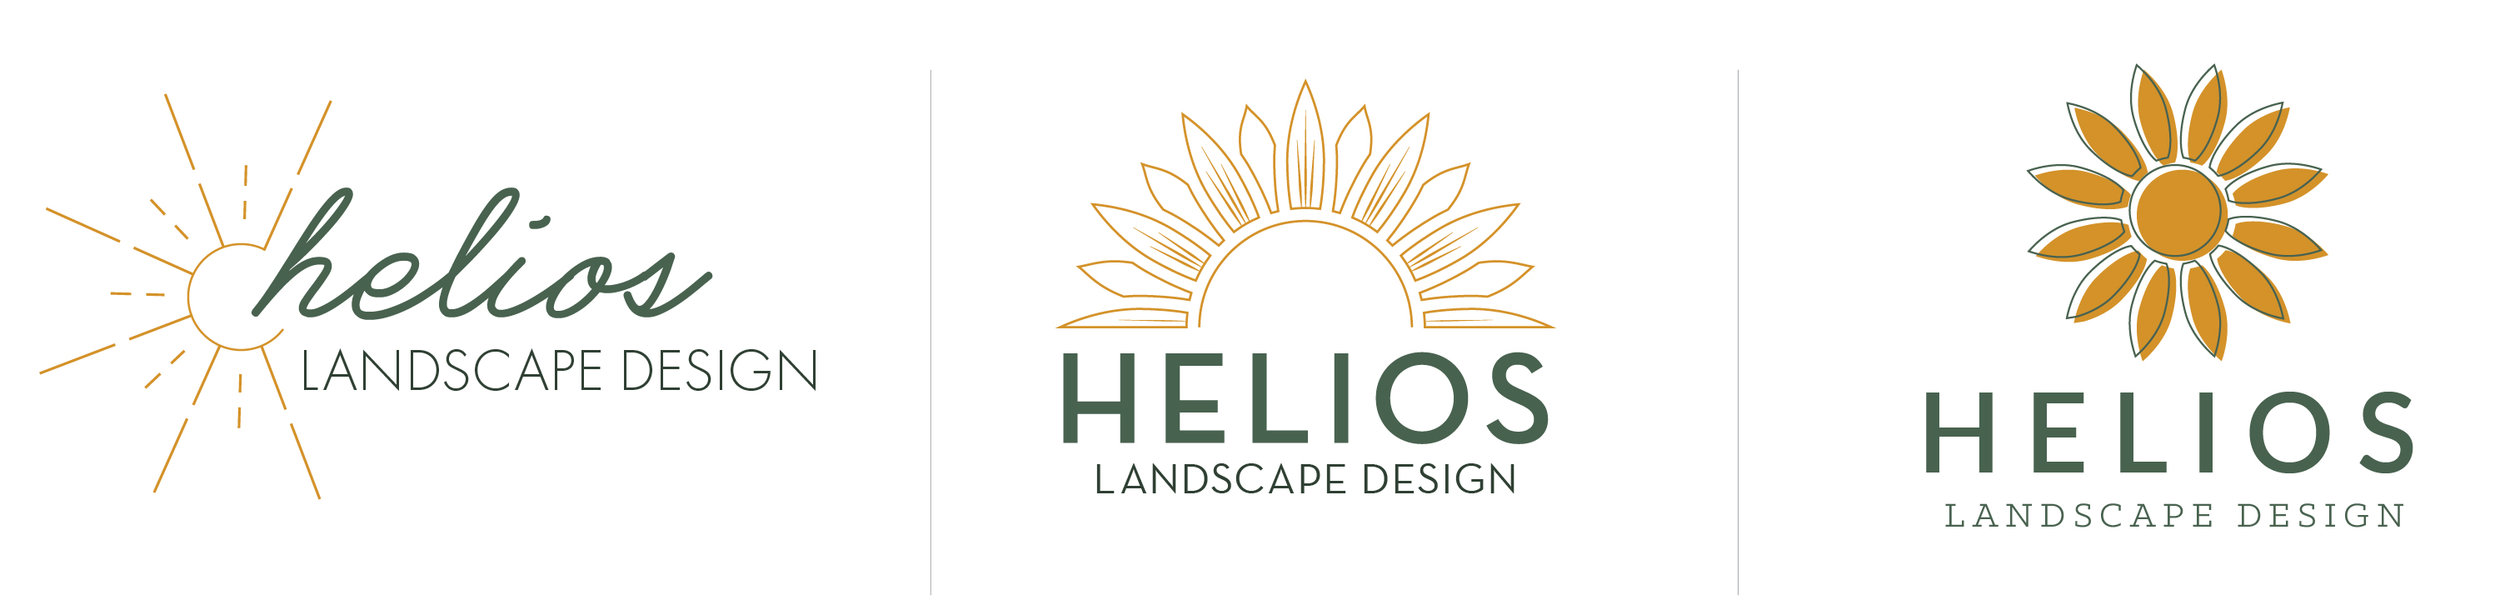 Landscape Logo Design Good Day Design Co.